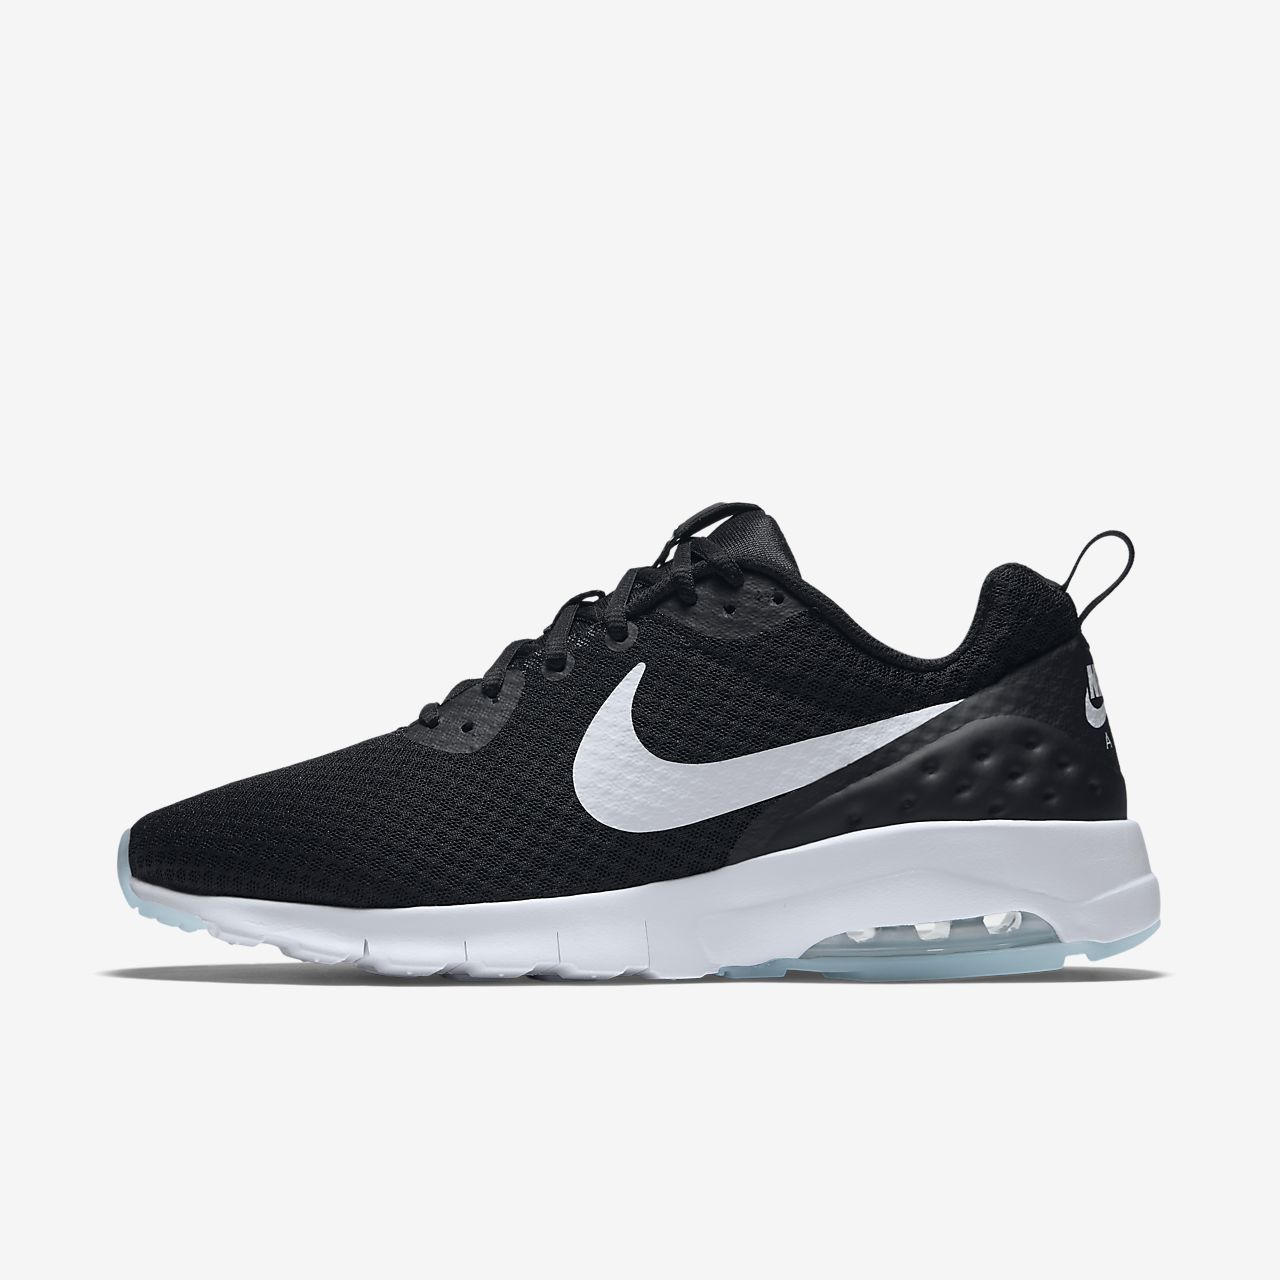 315cc1fdca60d5 Nike Air Max Motion Low Herrenschuh. Nike.com DE